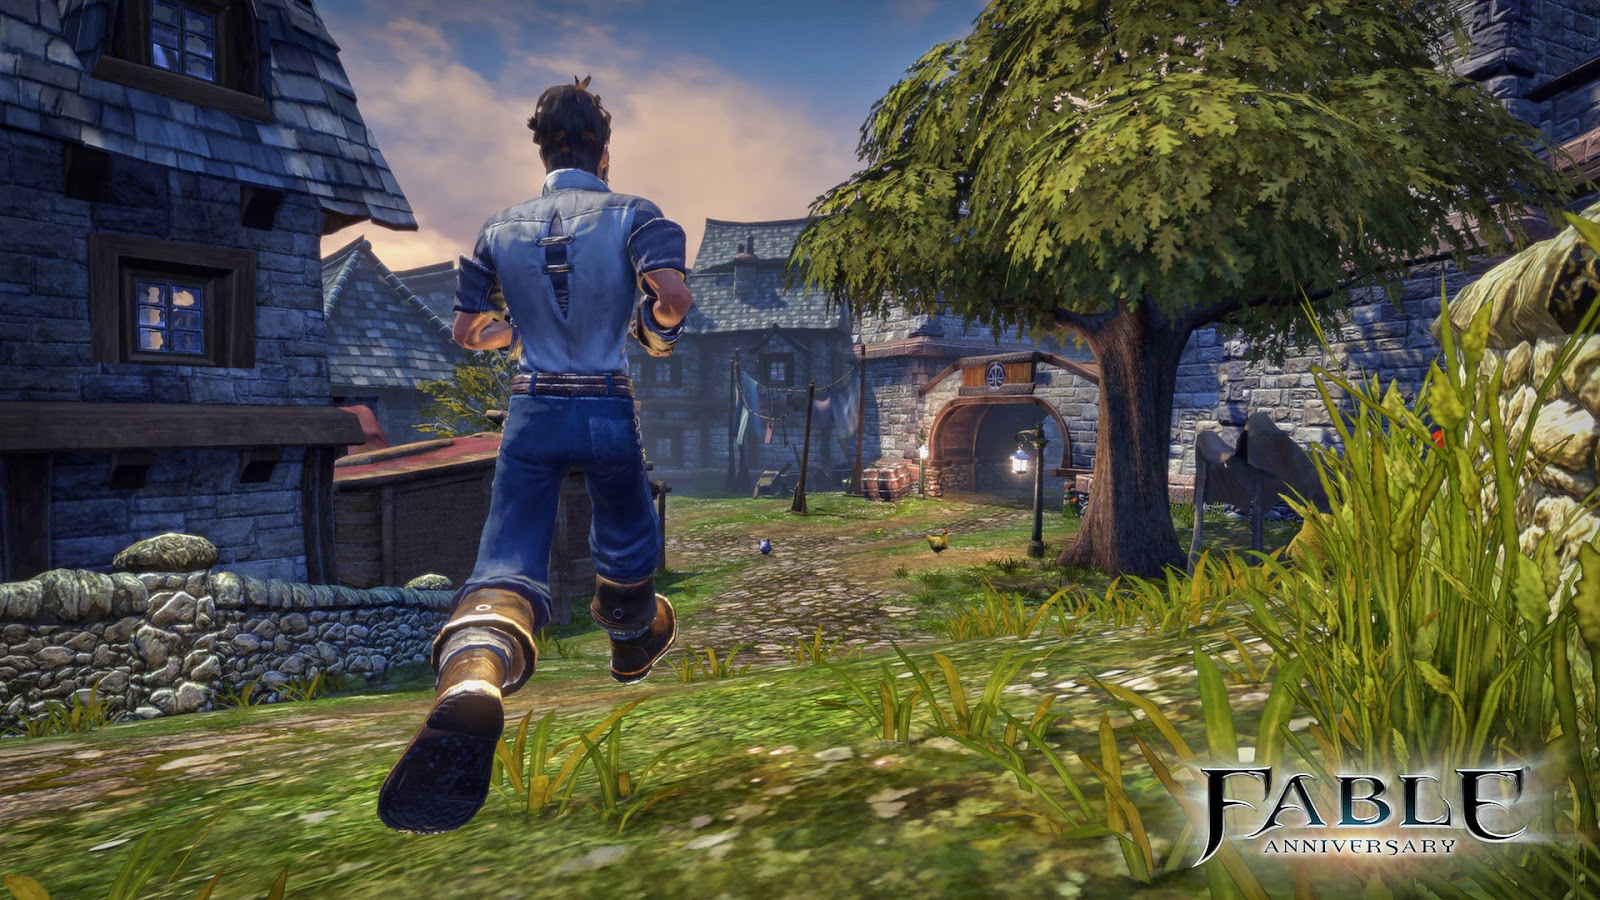 Fable Anniversary gameplay